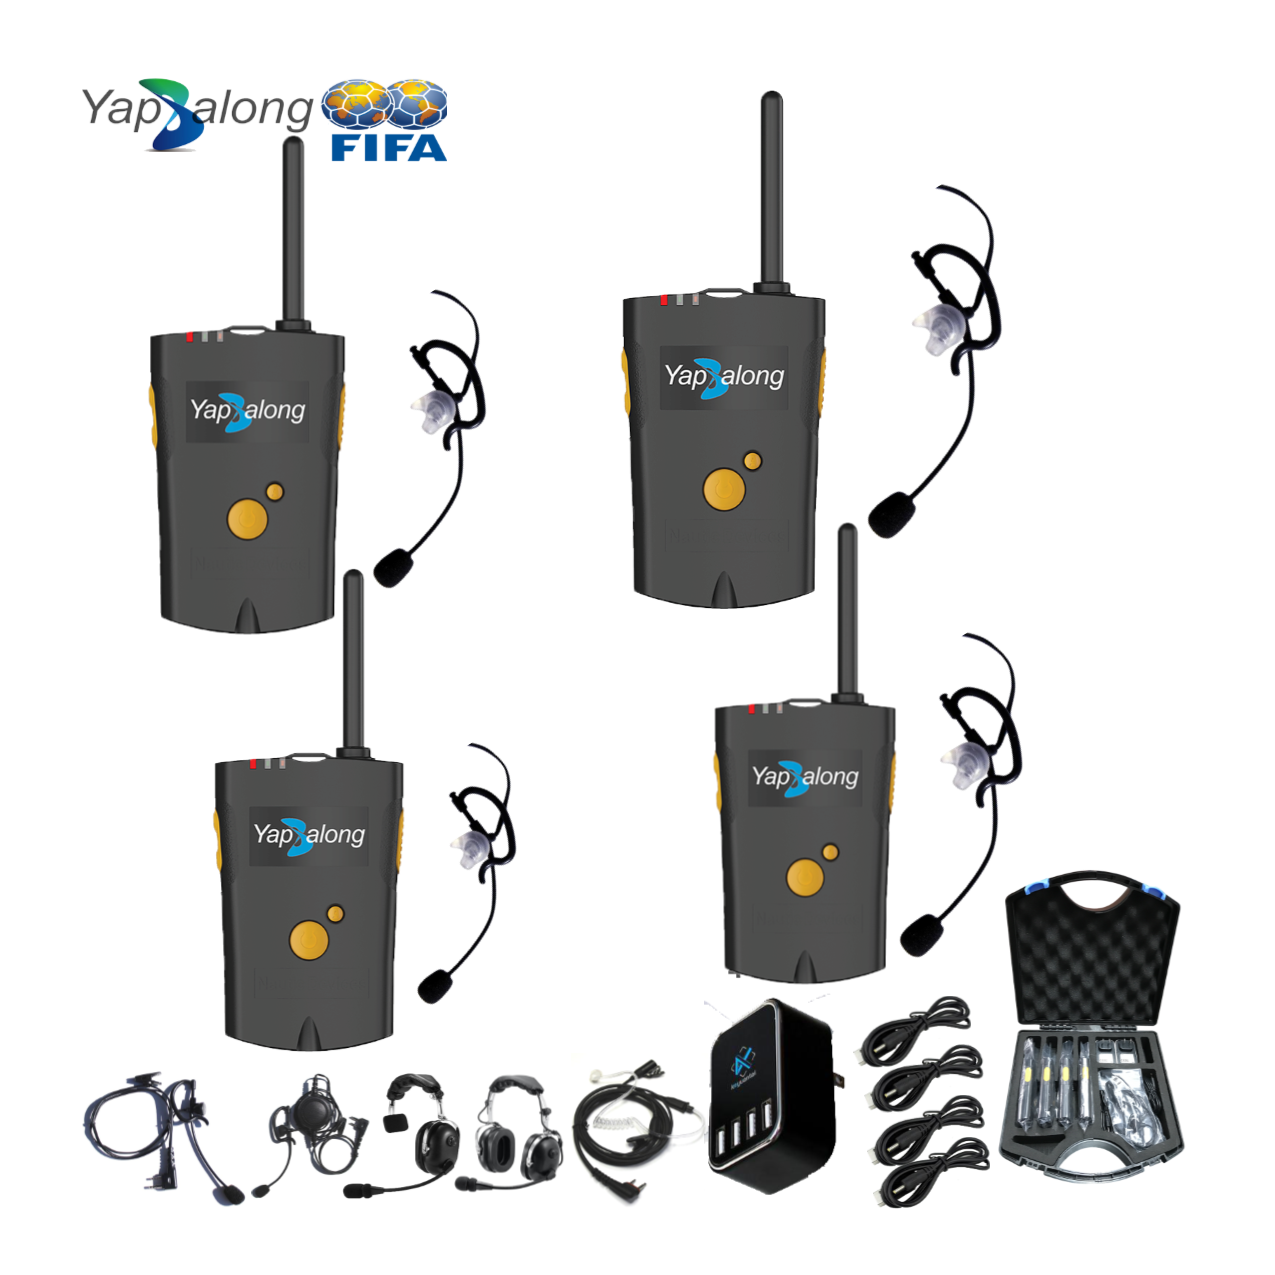 Yapalong 4000 (4-User) Complete Set Intercom Systems Intercom Systems